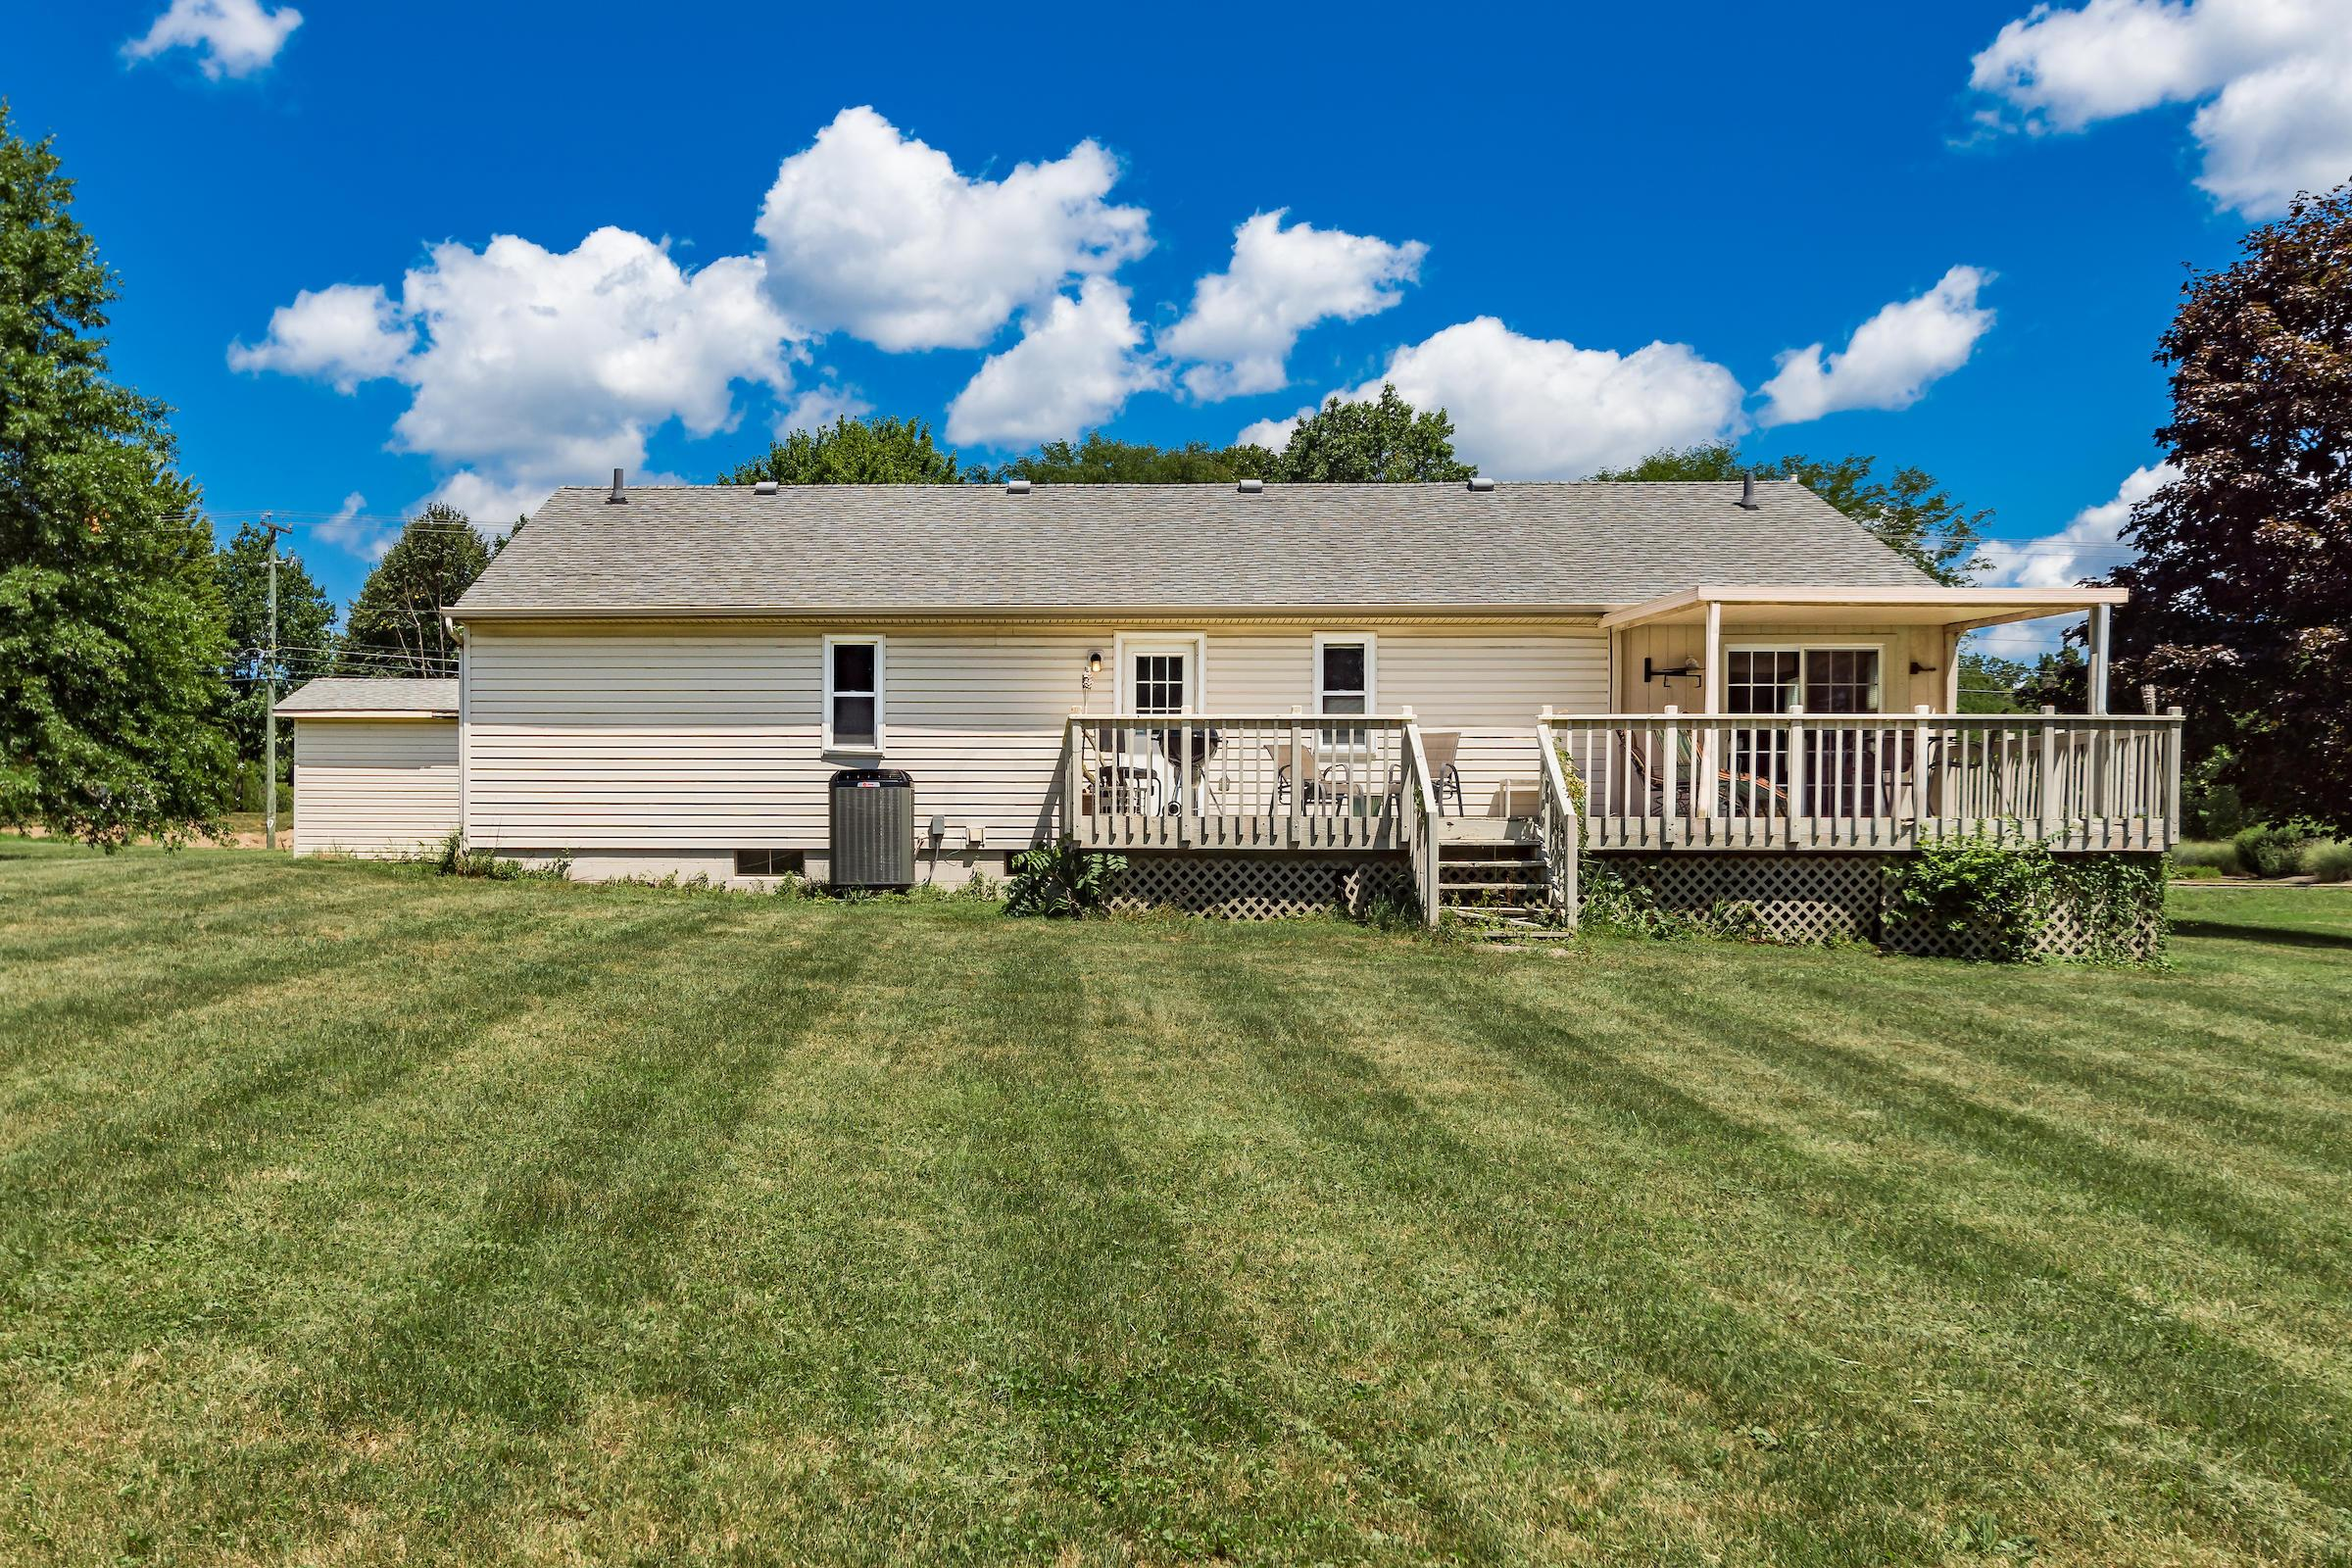 2670 Powell Road, Lewis Center, Ohio 43035, 3 Bedrooms Bedrooms, ,3 BathroomsBathrooms,Residential,For Sale,Powell,220025759